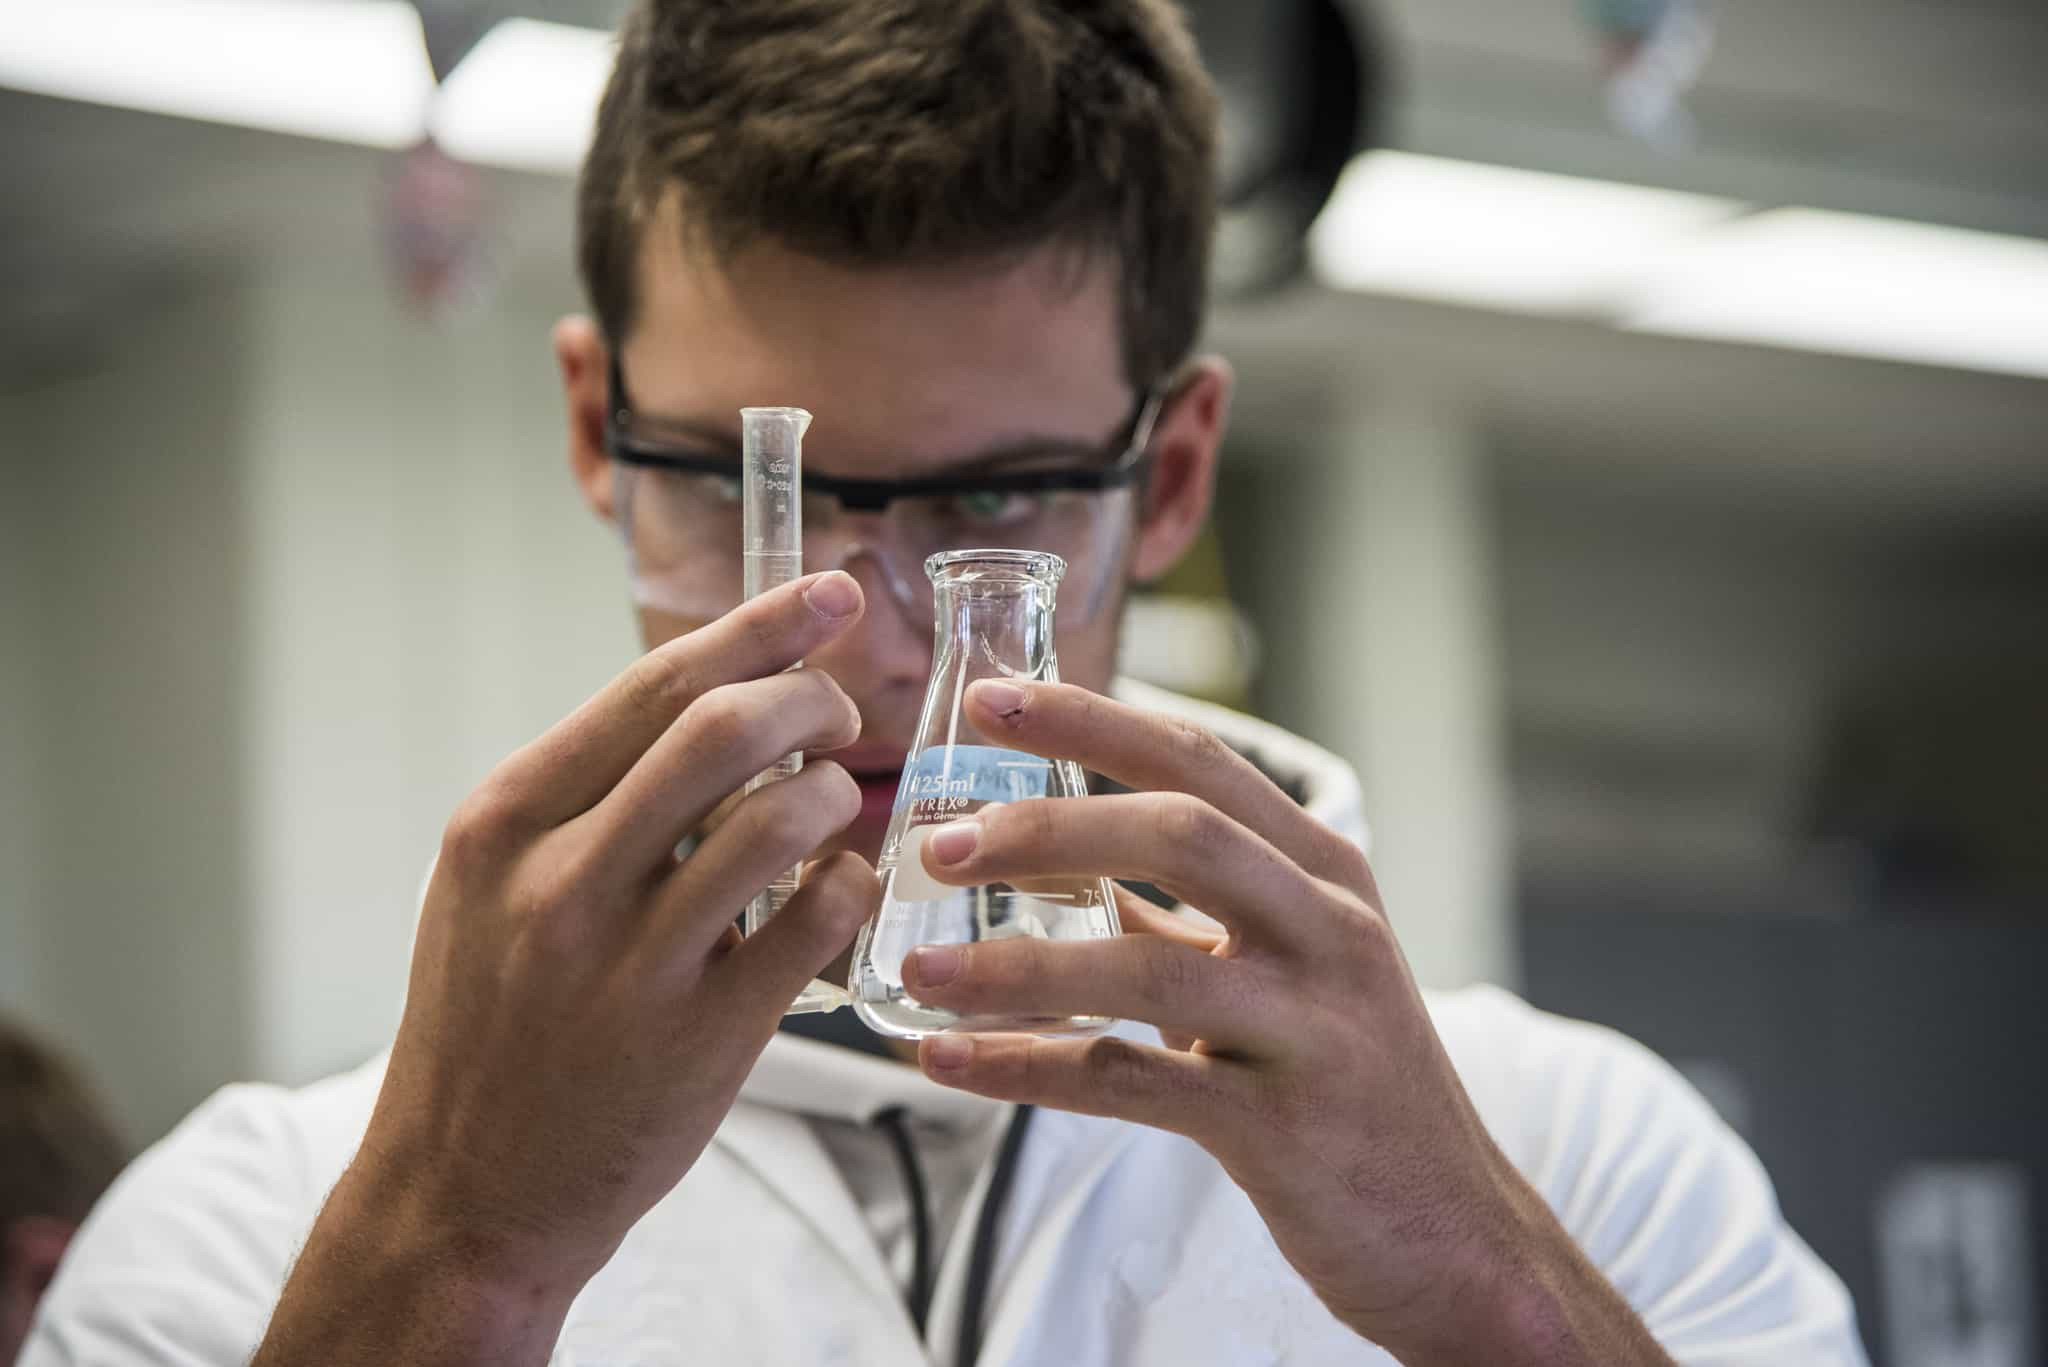 High school student holding glass beakers